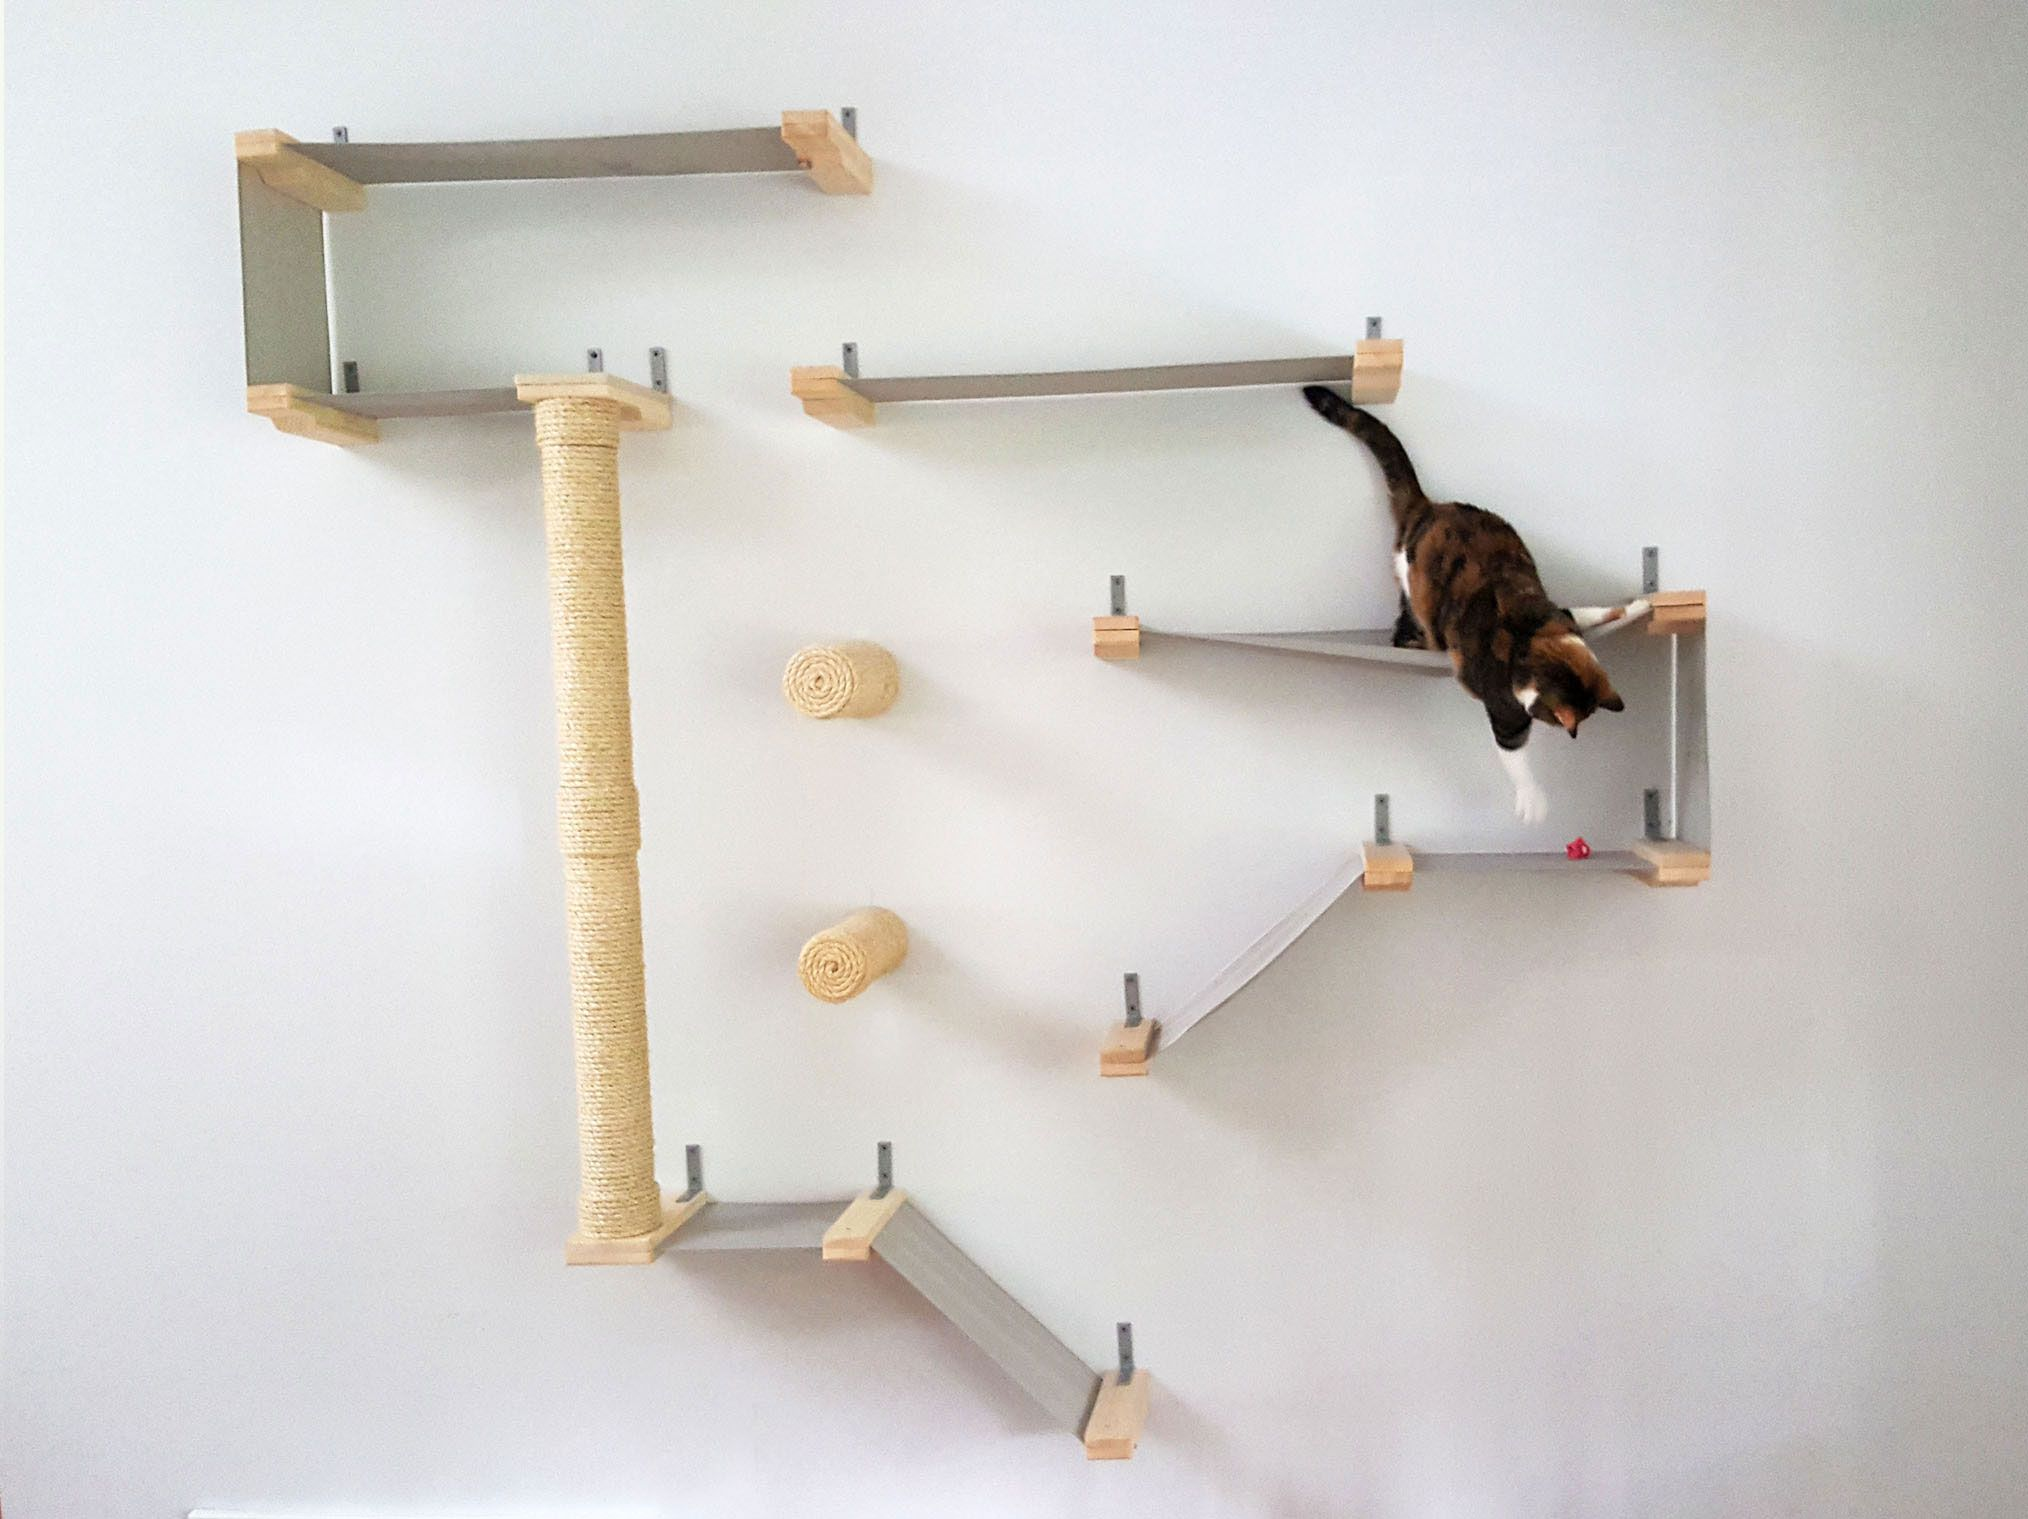 Massive All In One Cat Complex With Cat Shelves, Sisal And Ladders